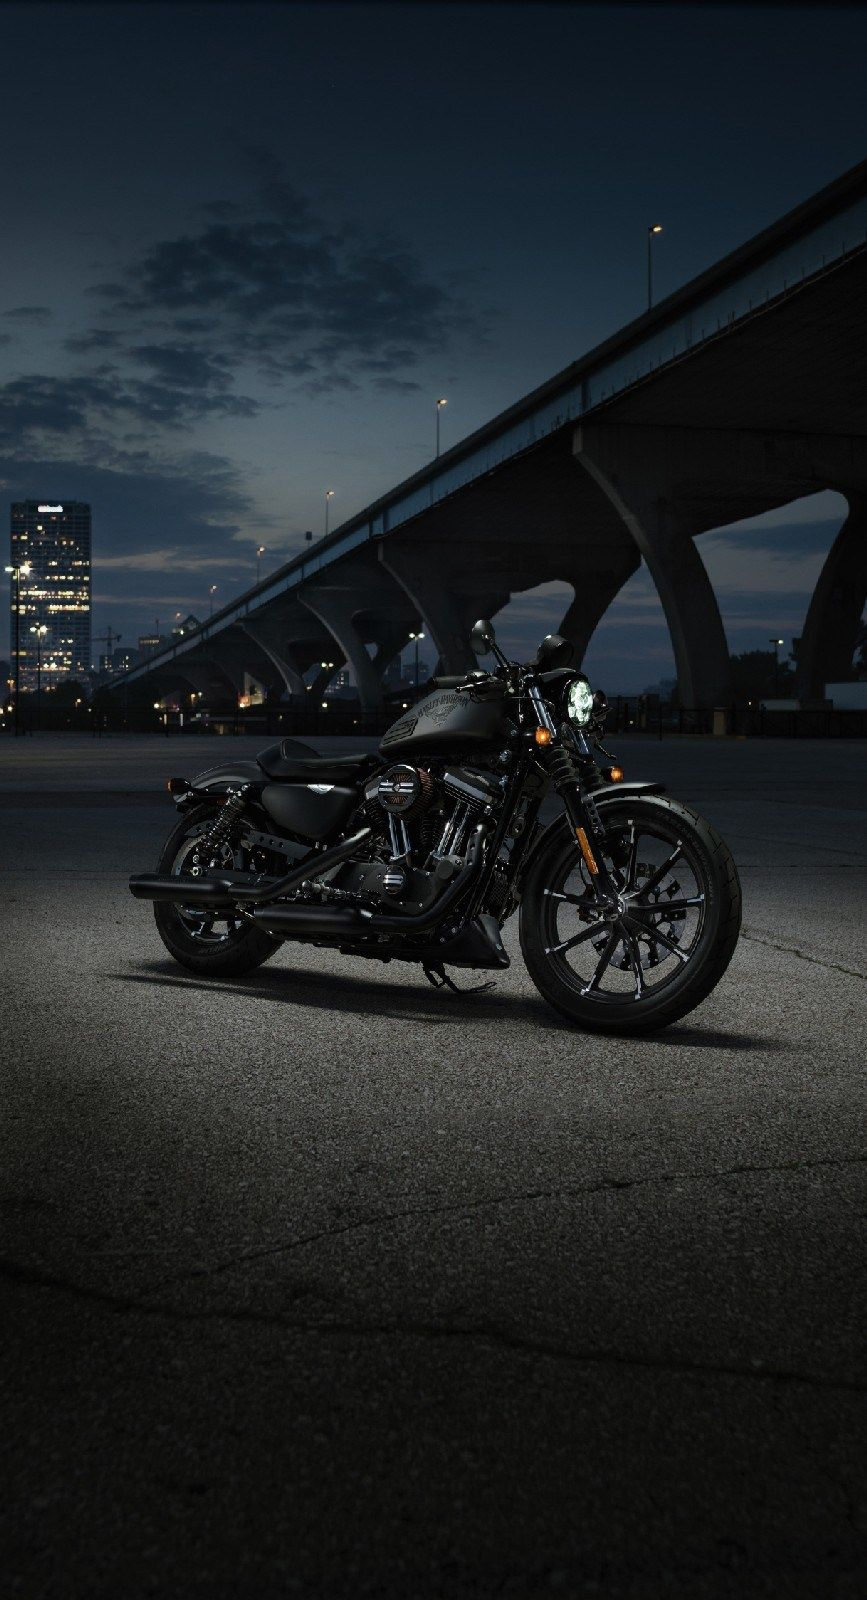 Top Harley Davidson Iron 8 Motorcycle Picture 24 Awesome Indoor Outdoor Harley Davidson Roadster Harley Davidson Wallpaper Harley Davidson Iron 8